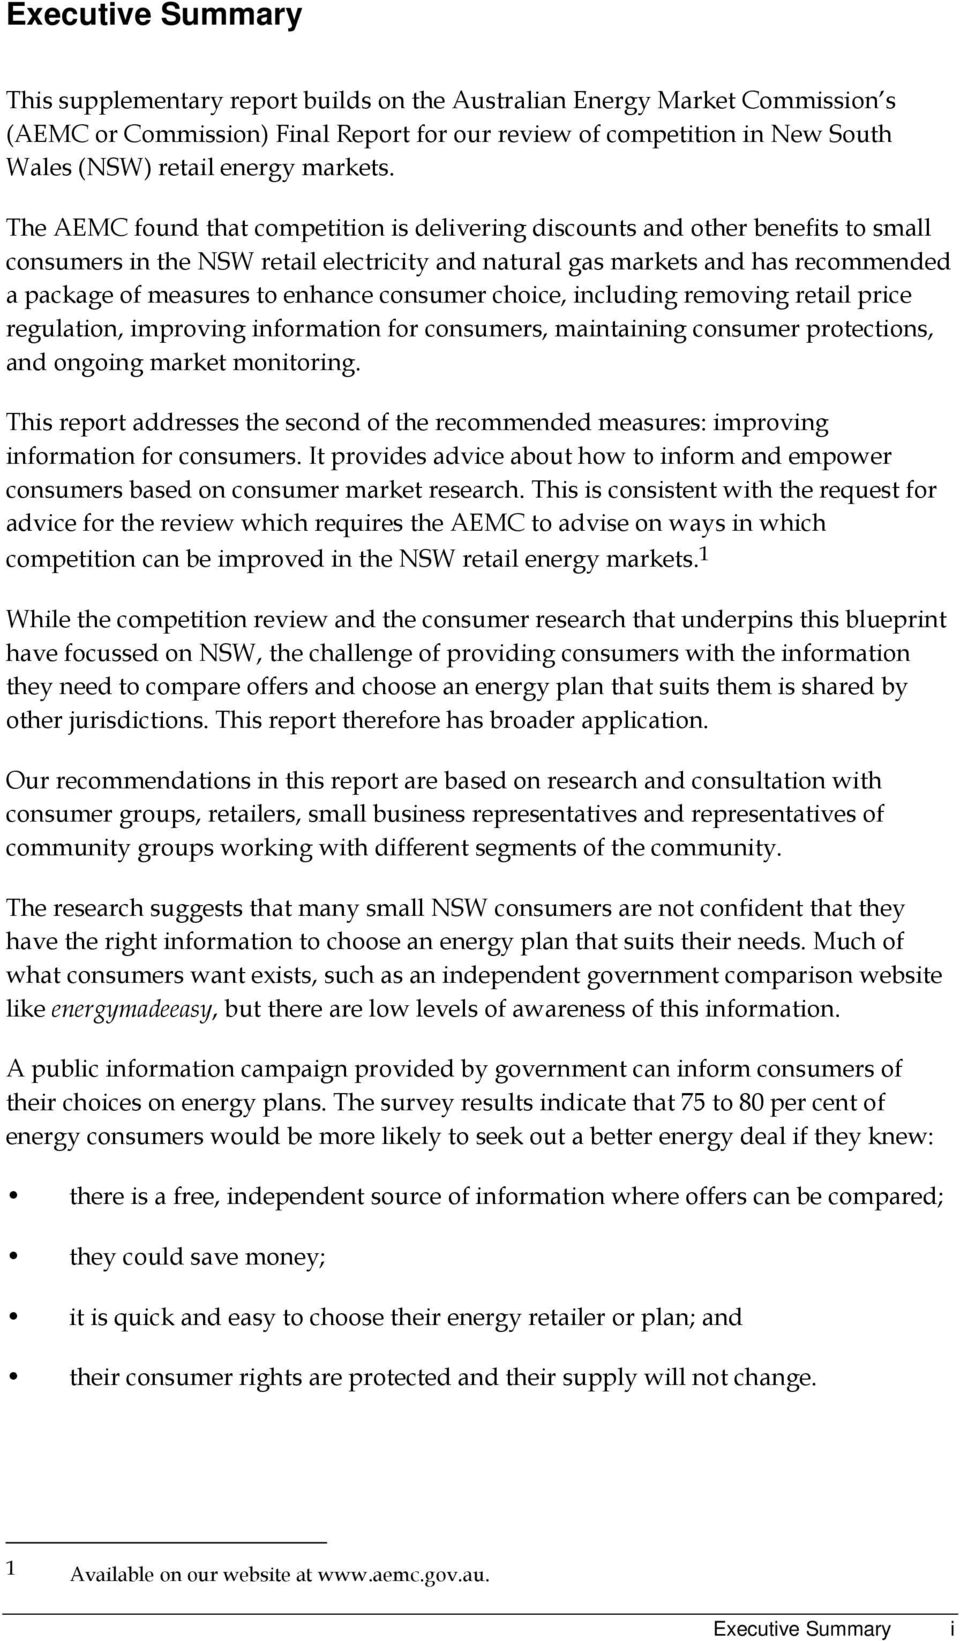 The AEMC found that competition is delivering discounts and other benefits to small consumers in the NSW retail electricity and natural gas markets and has recommended a package of measures to